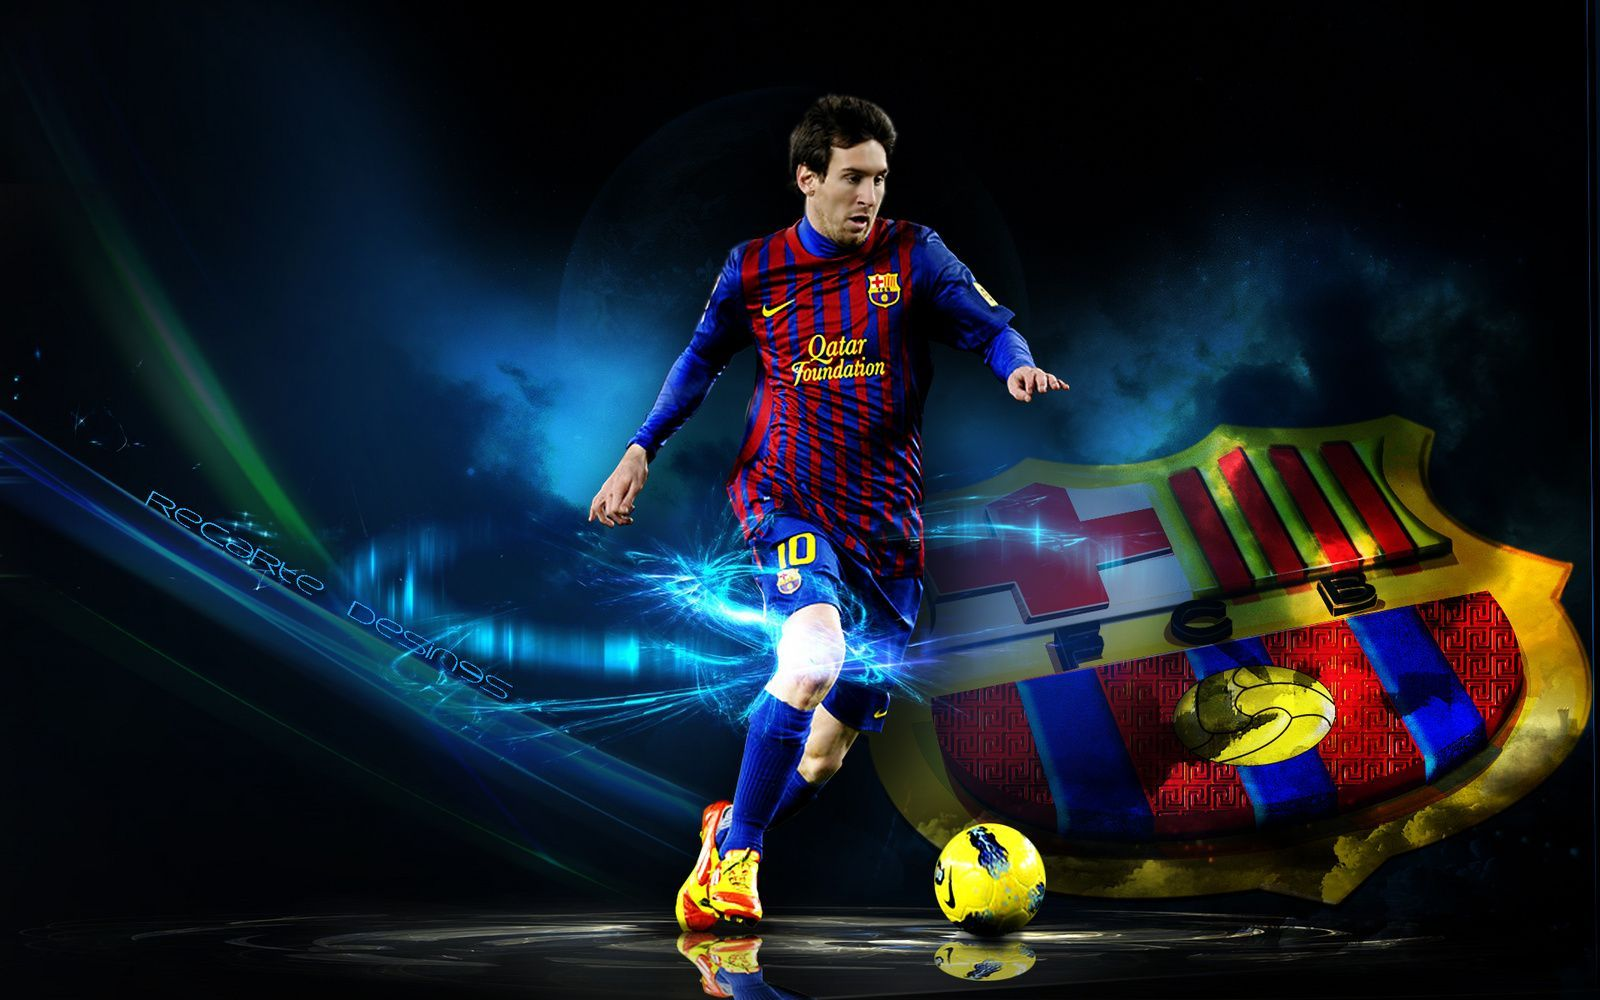 Lionel-Messi-1080p-HD-Cave-wallpaper-wpc9007163